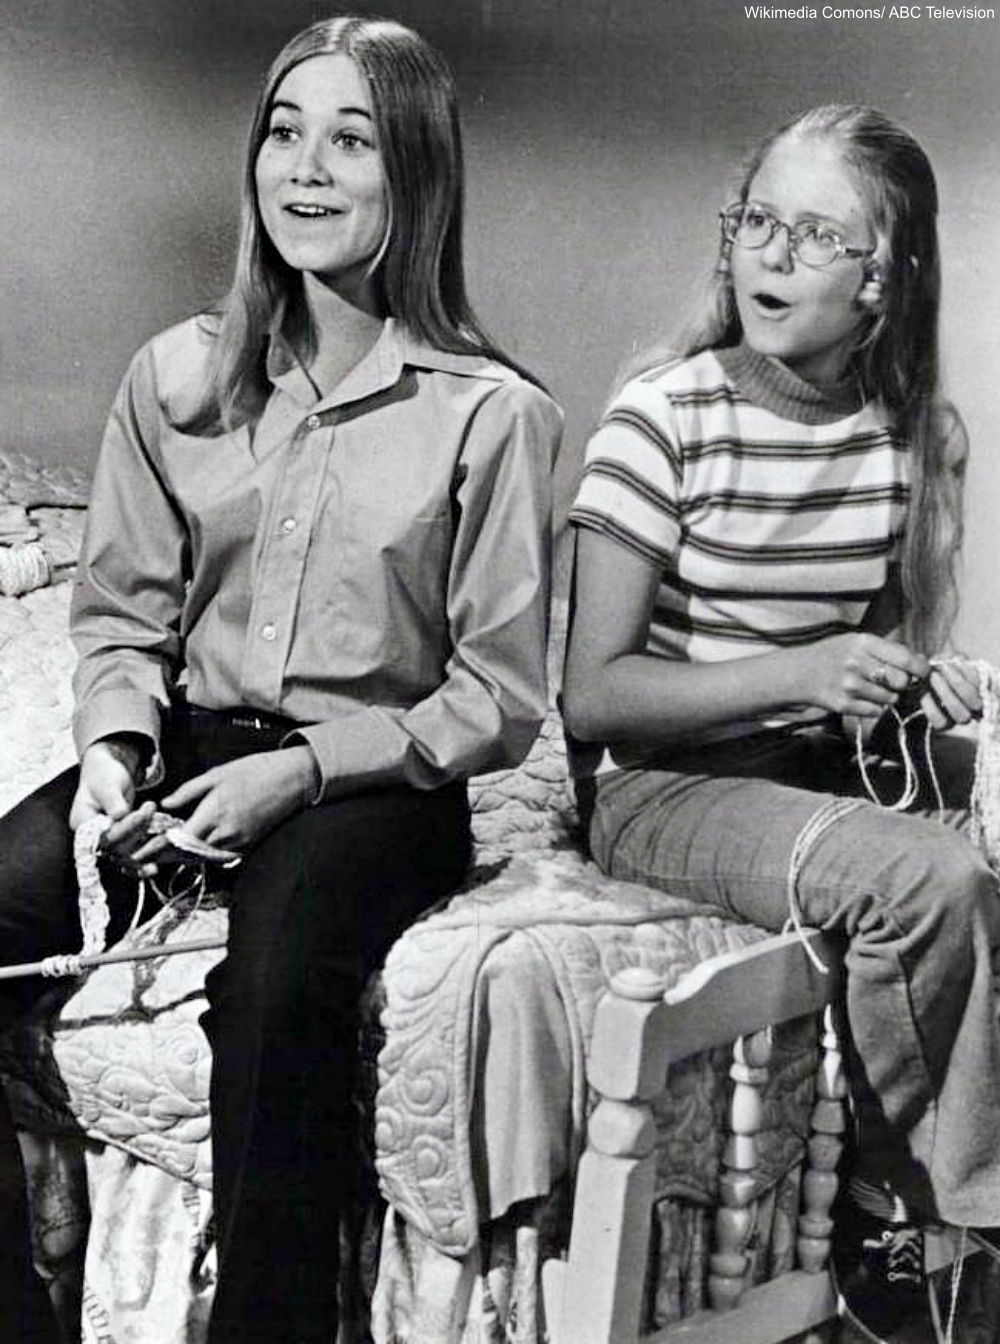 Maureen McCormick and Eve Plumb on The Brady Bunch